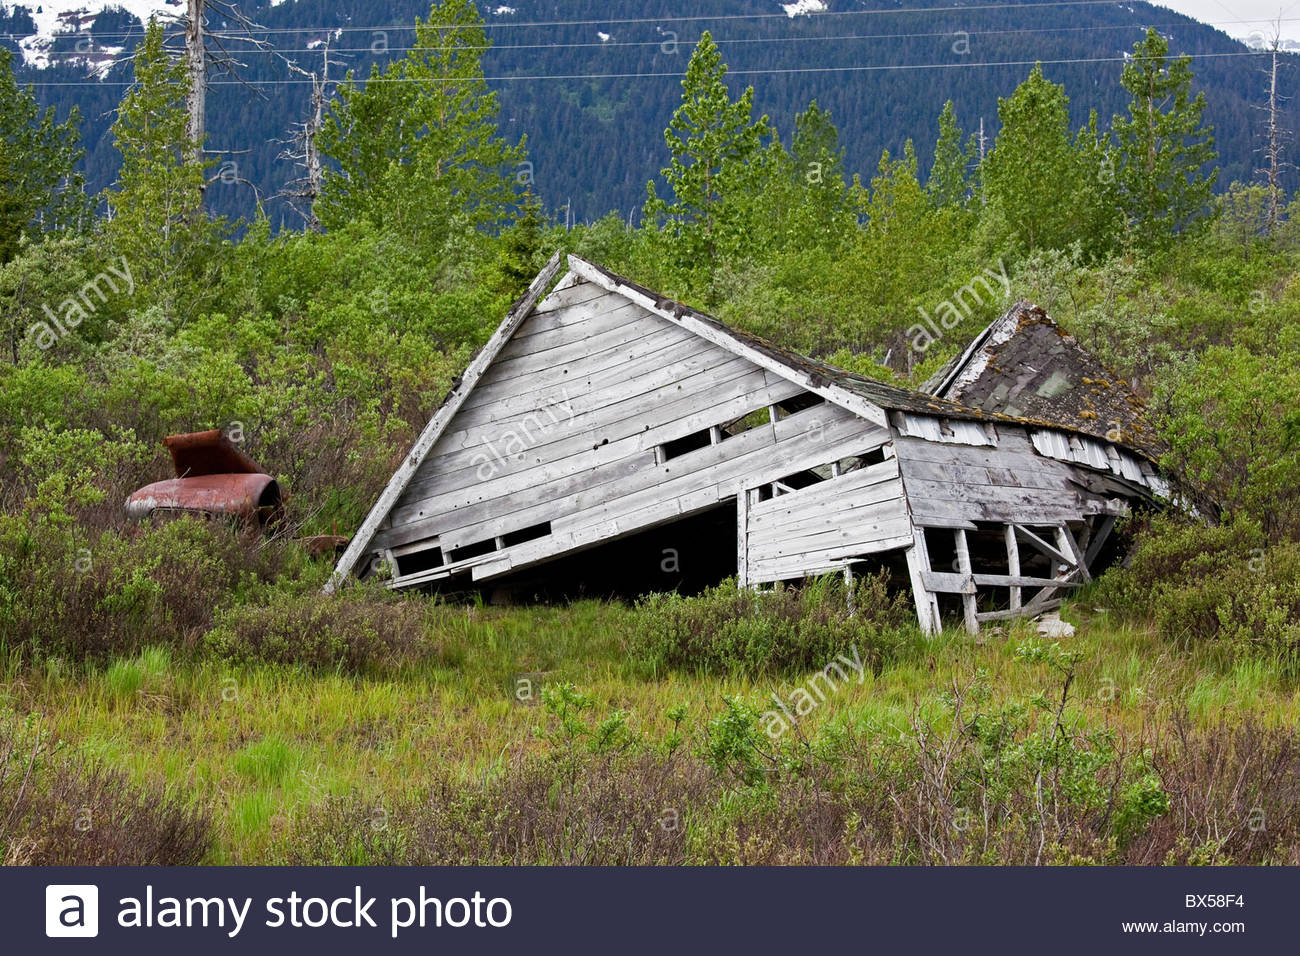 USA, Alaska, Portage. One of the disintegrating original woodframe buildings in Old Portage collapses into the swampy - Stock Image